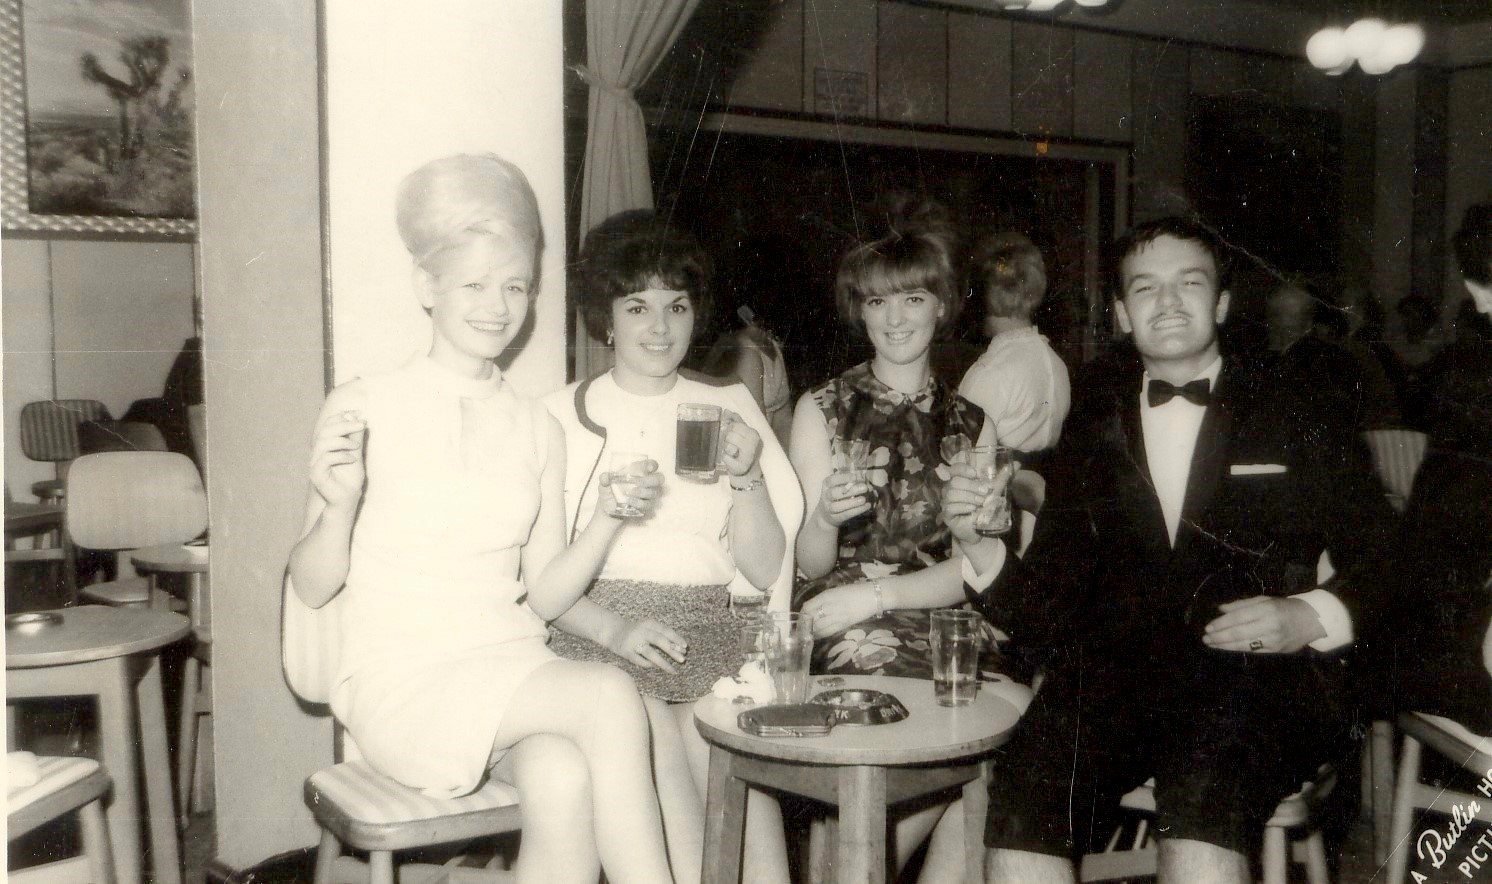 Butlins Brighton 1964 at Redcoats Reunited Frankie 2